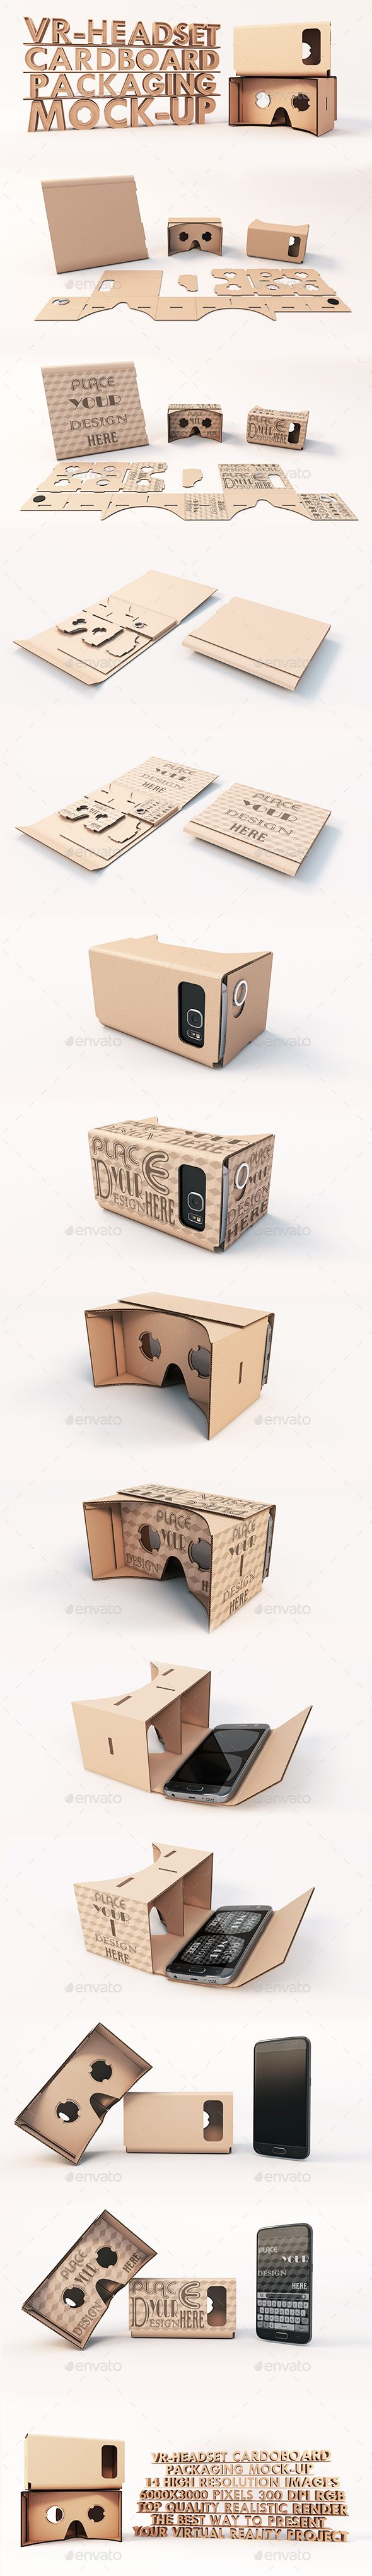 Virtual Reality Headset Cardboard Packaging Mock-ups - Product Mock-Ups Graphics